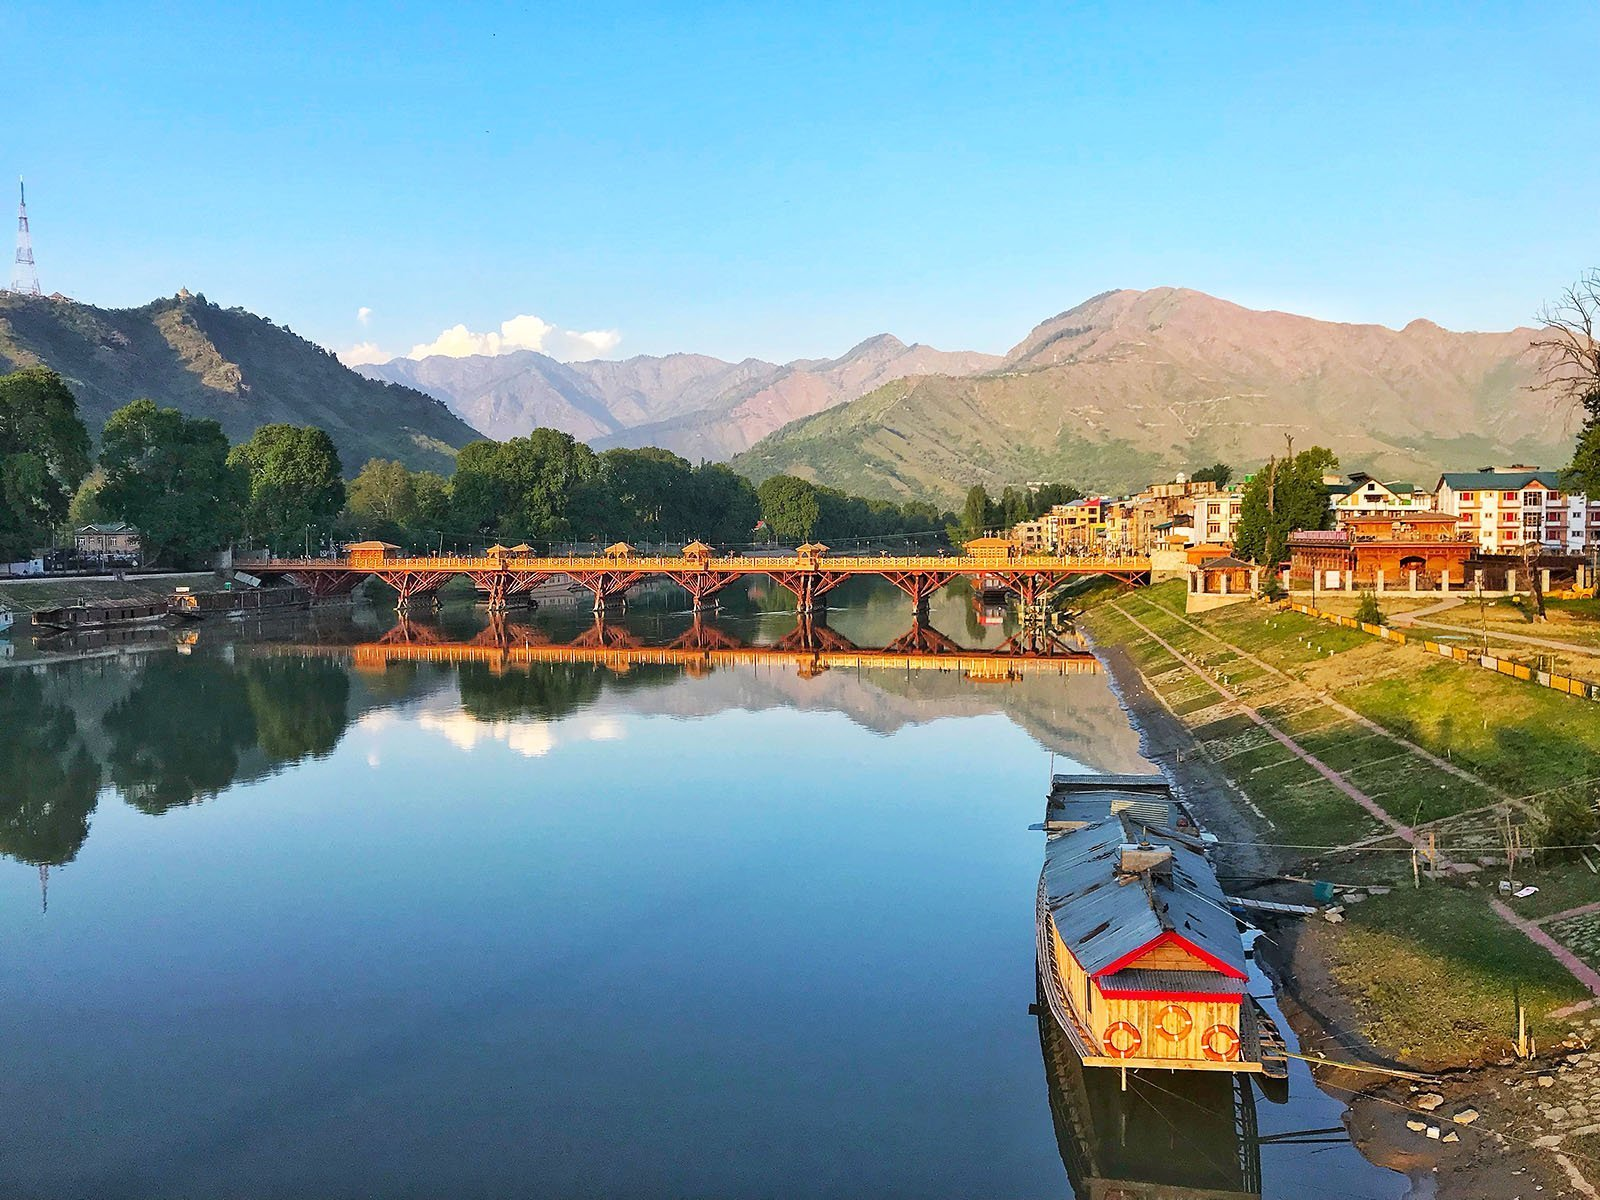 India's Best: Top 5 Things to Do in Srinagar, India